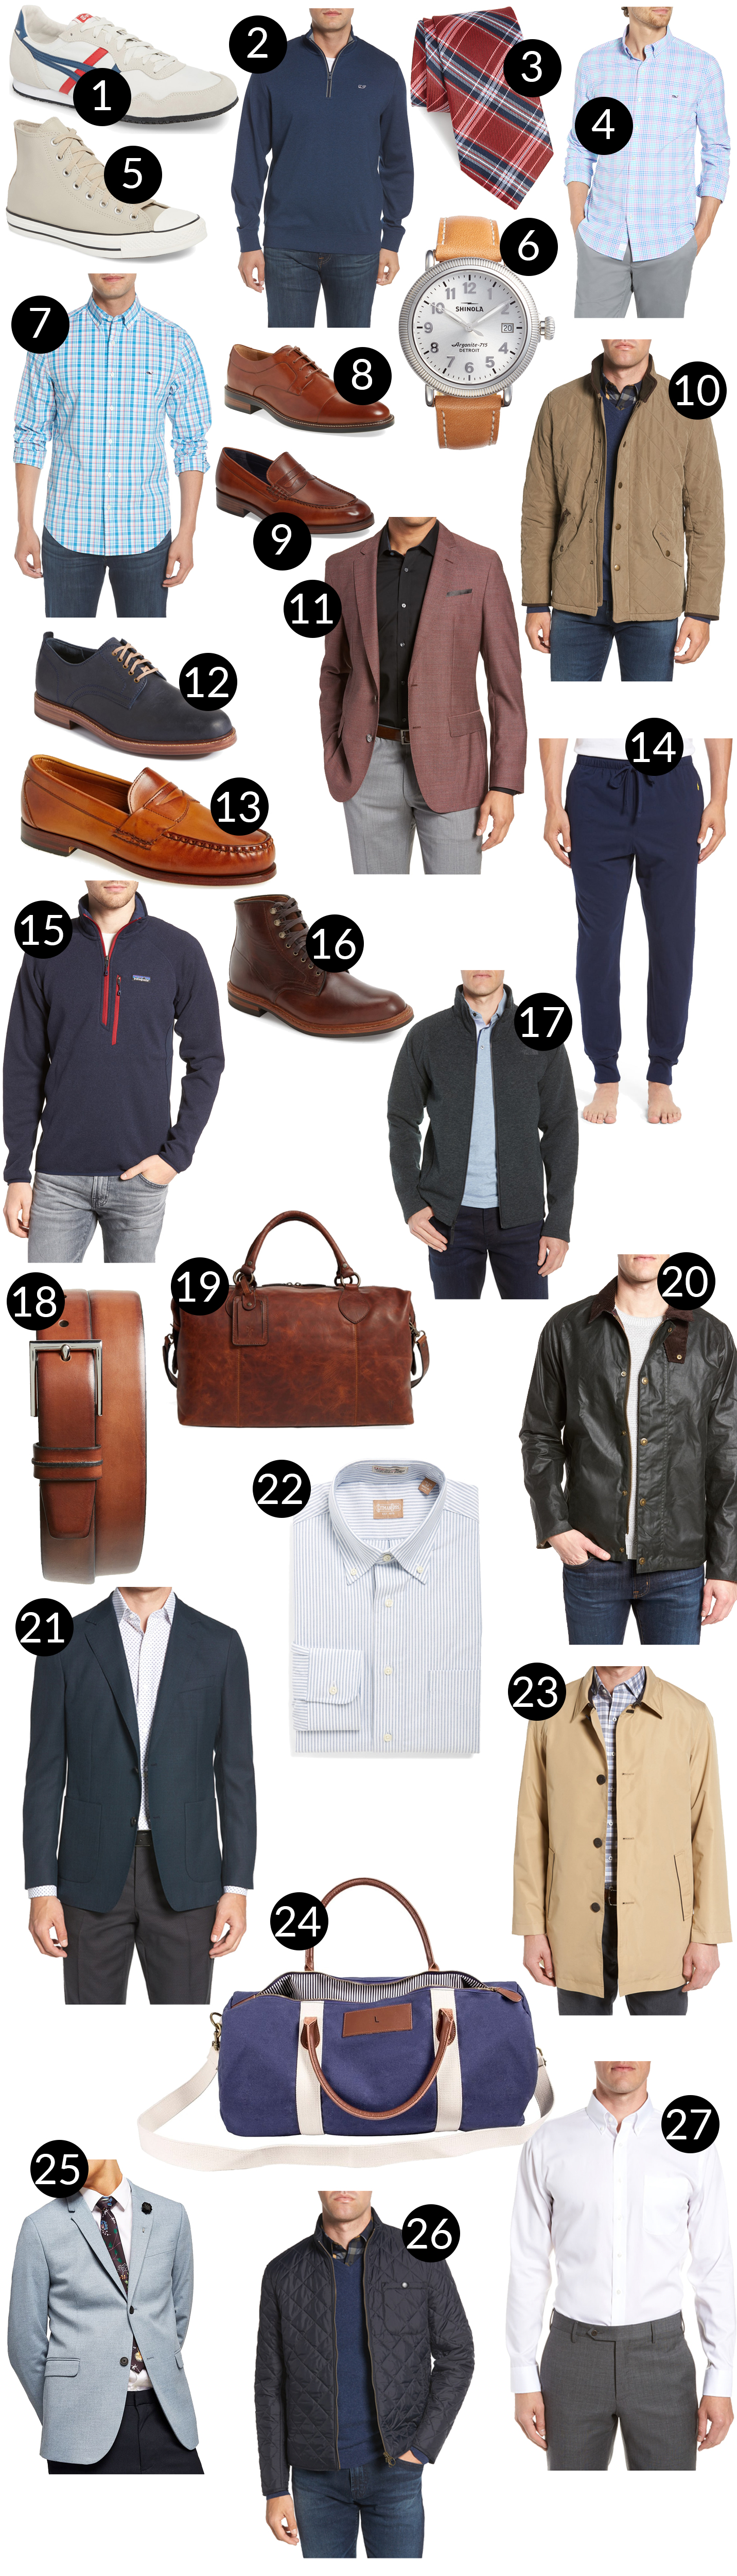 LIVE: Nordstrom Anniversary Sale & $250 Giveaway mens